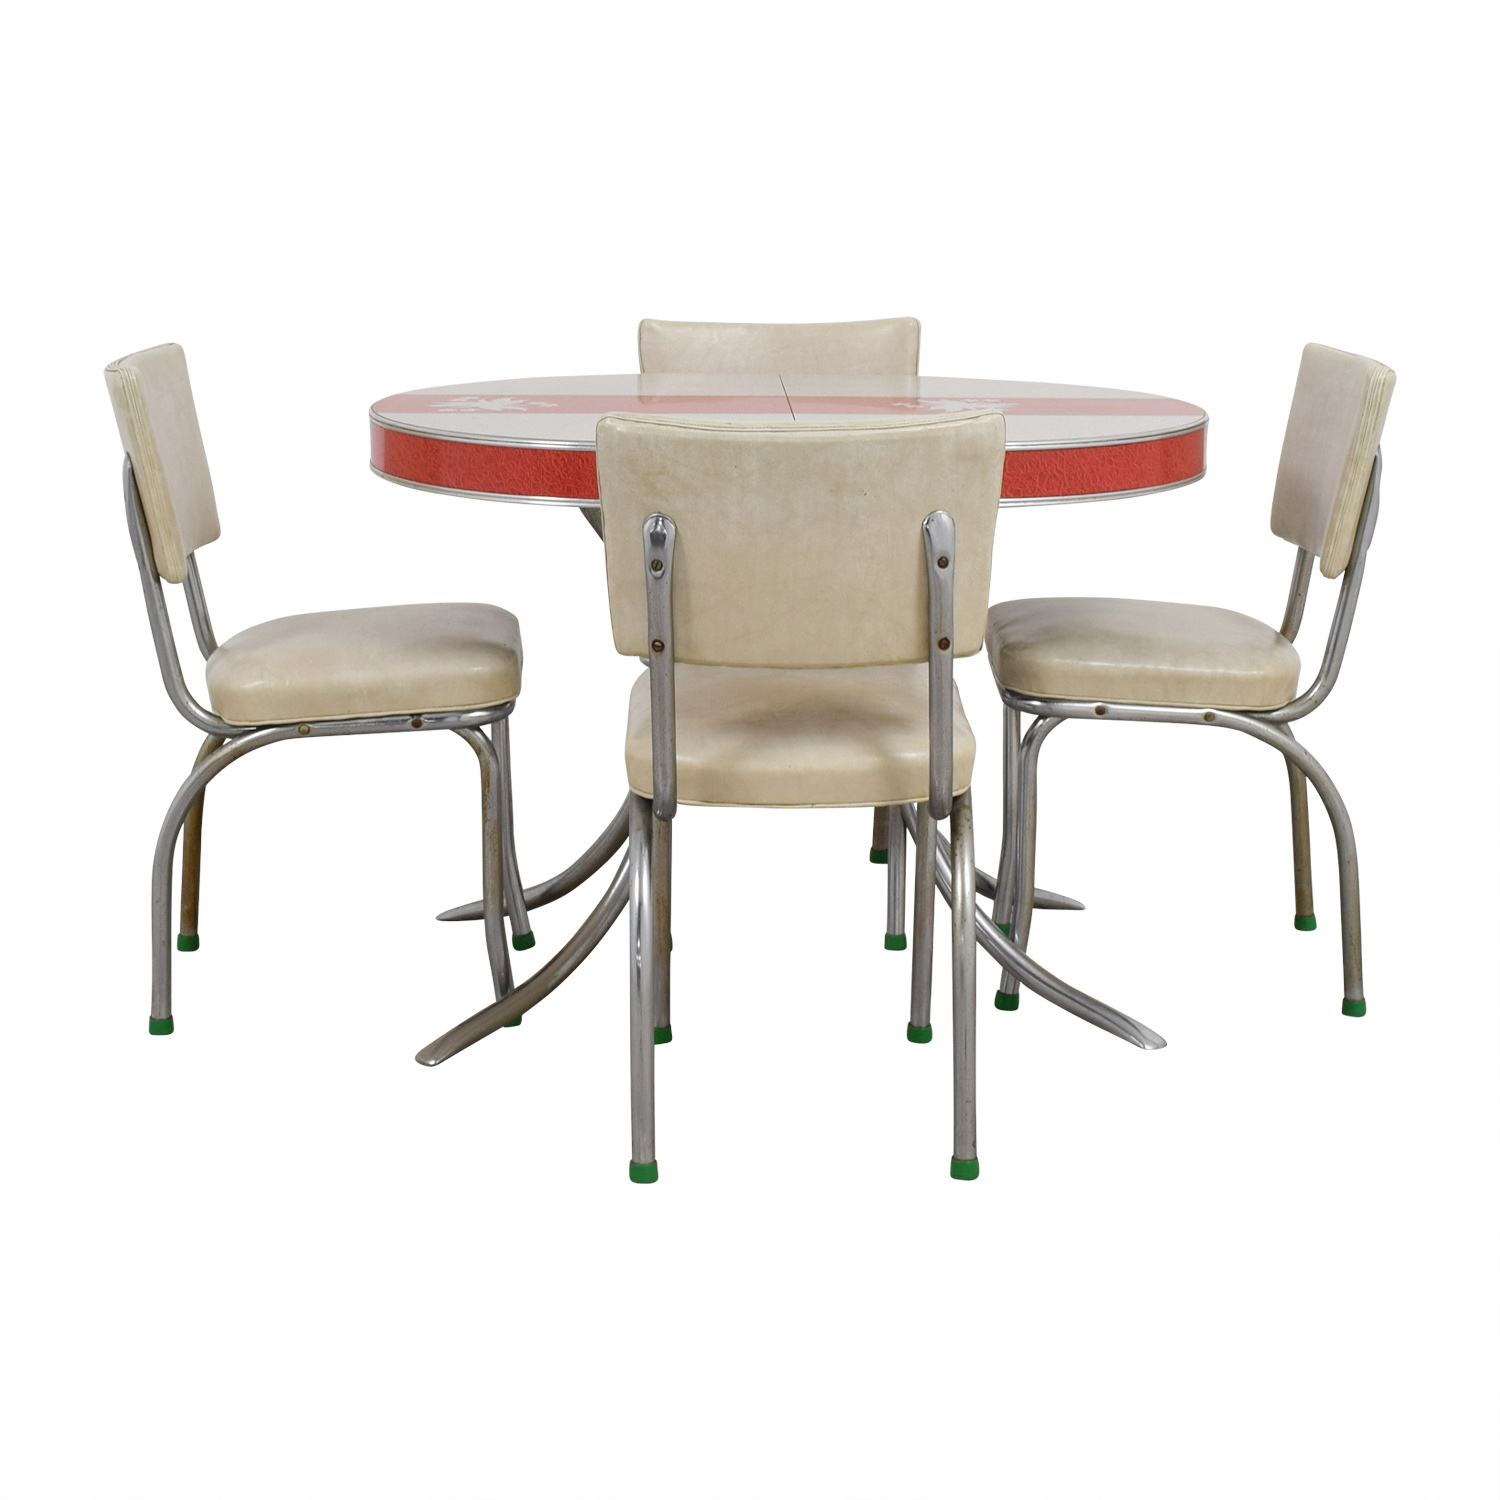 Medium image of vintage extendable formica top aluminum kitchen table and chairs on sale